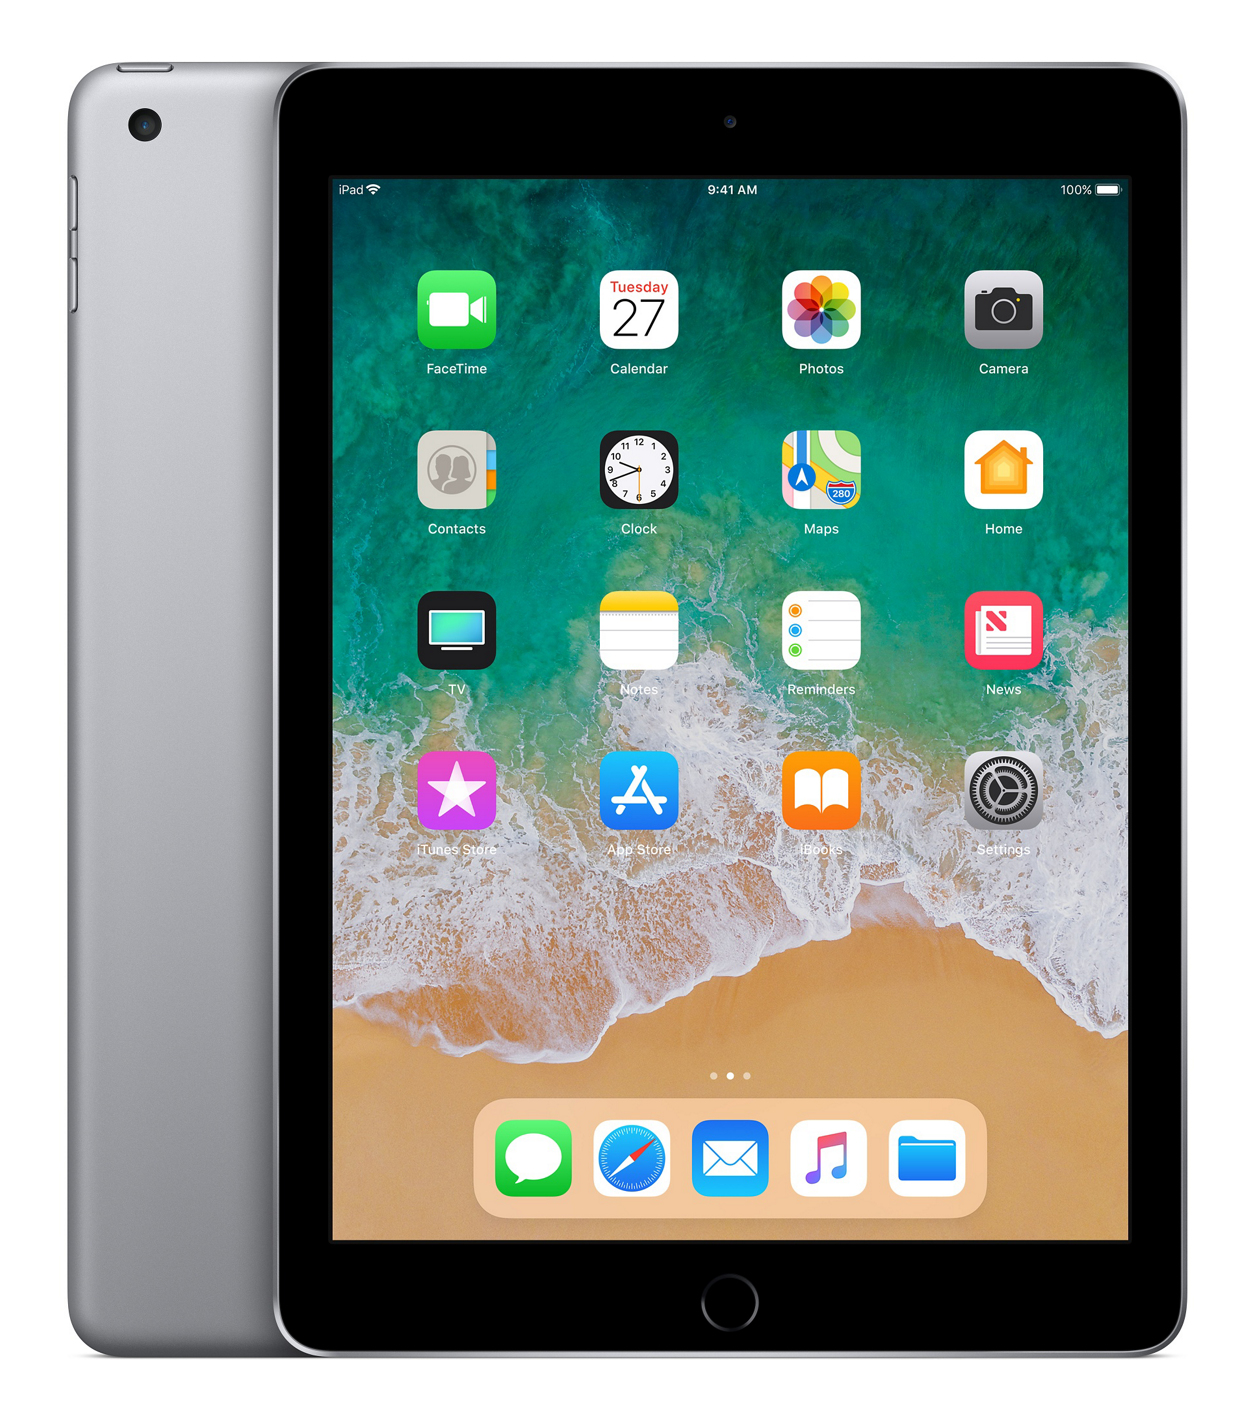 iPad 2018 - 9.7in - Wi-Fi - 128GB - Space Grey